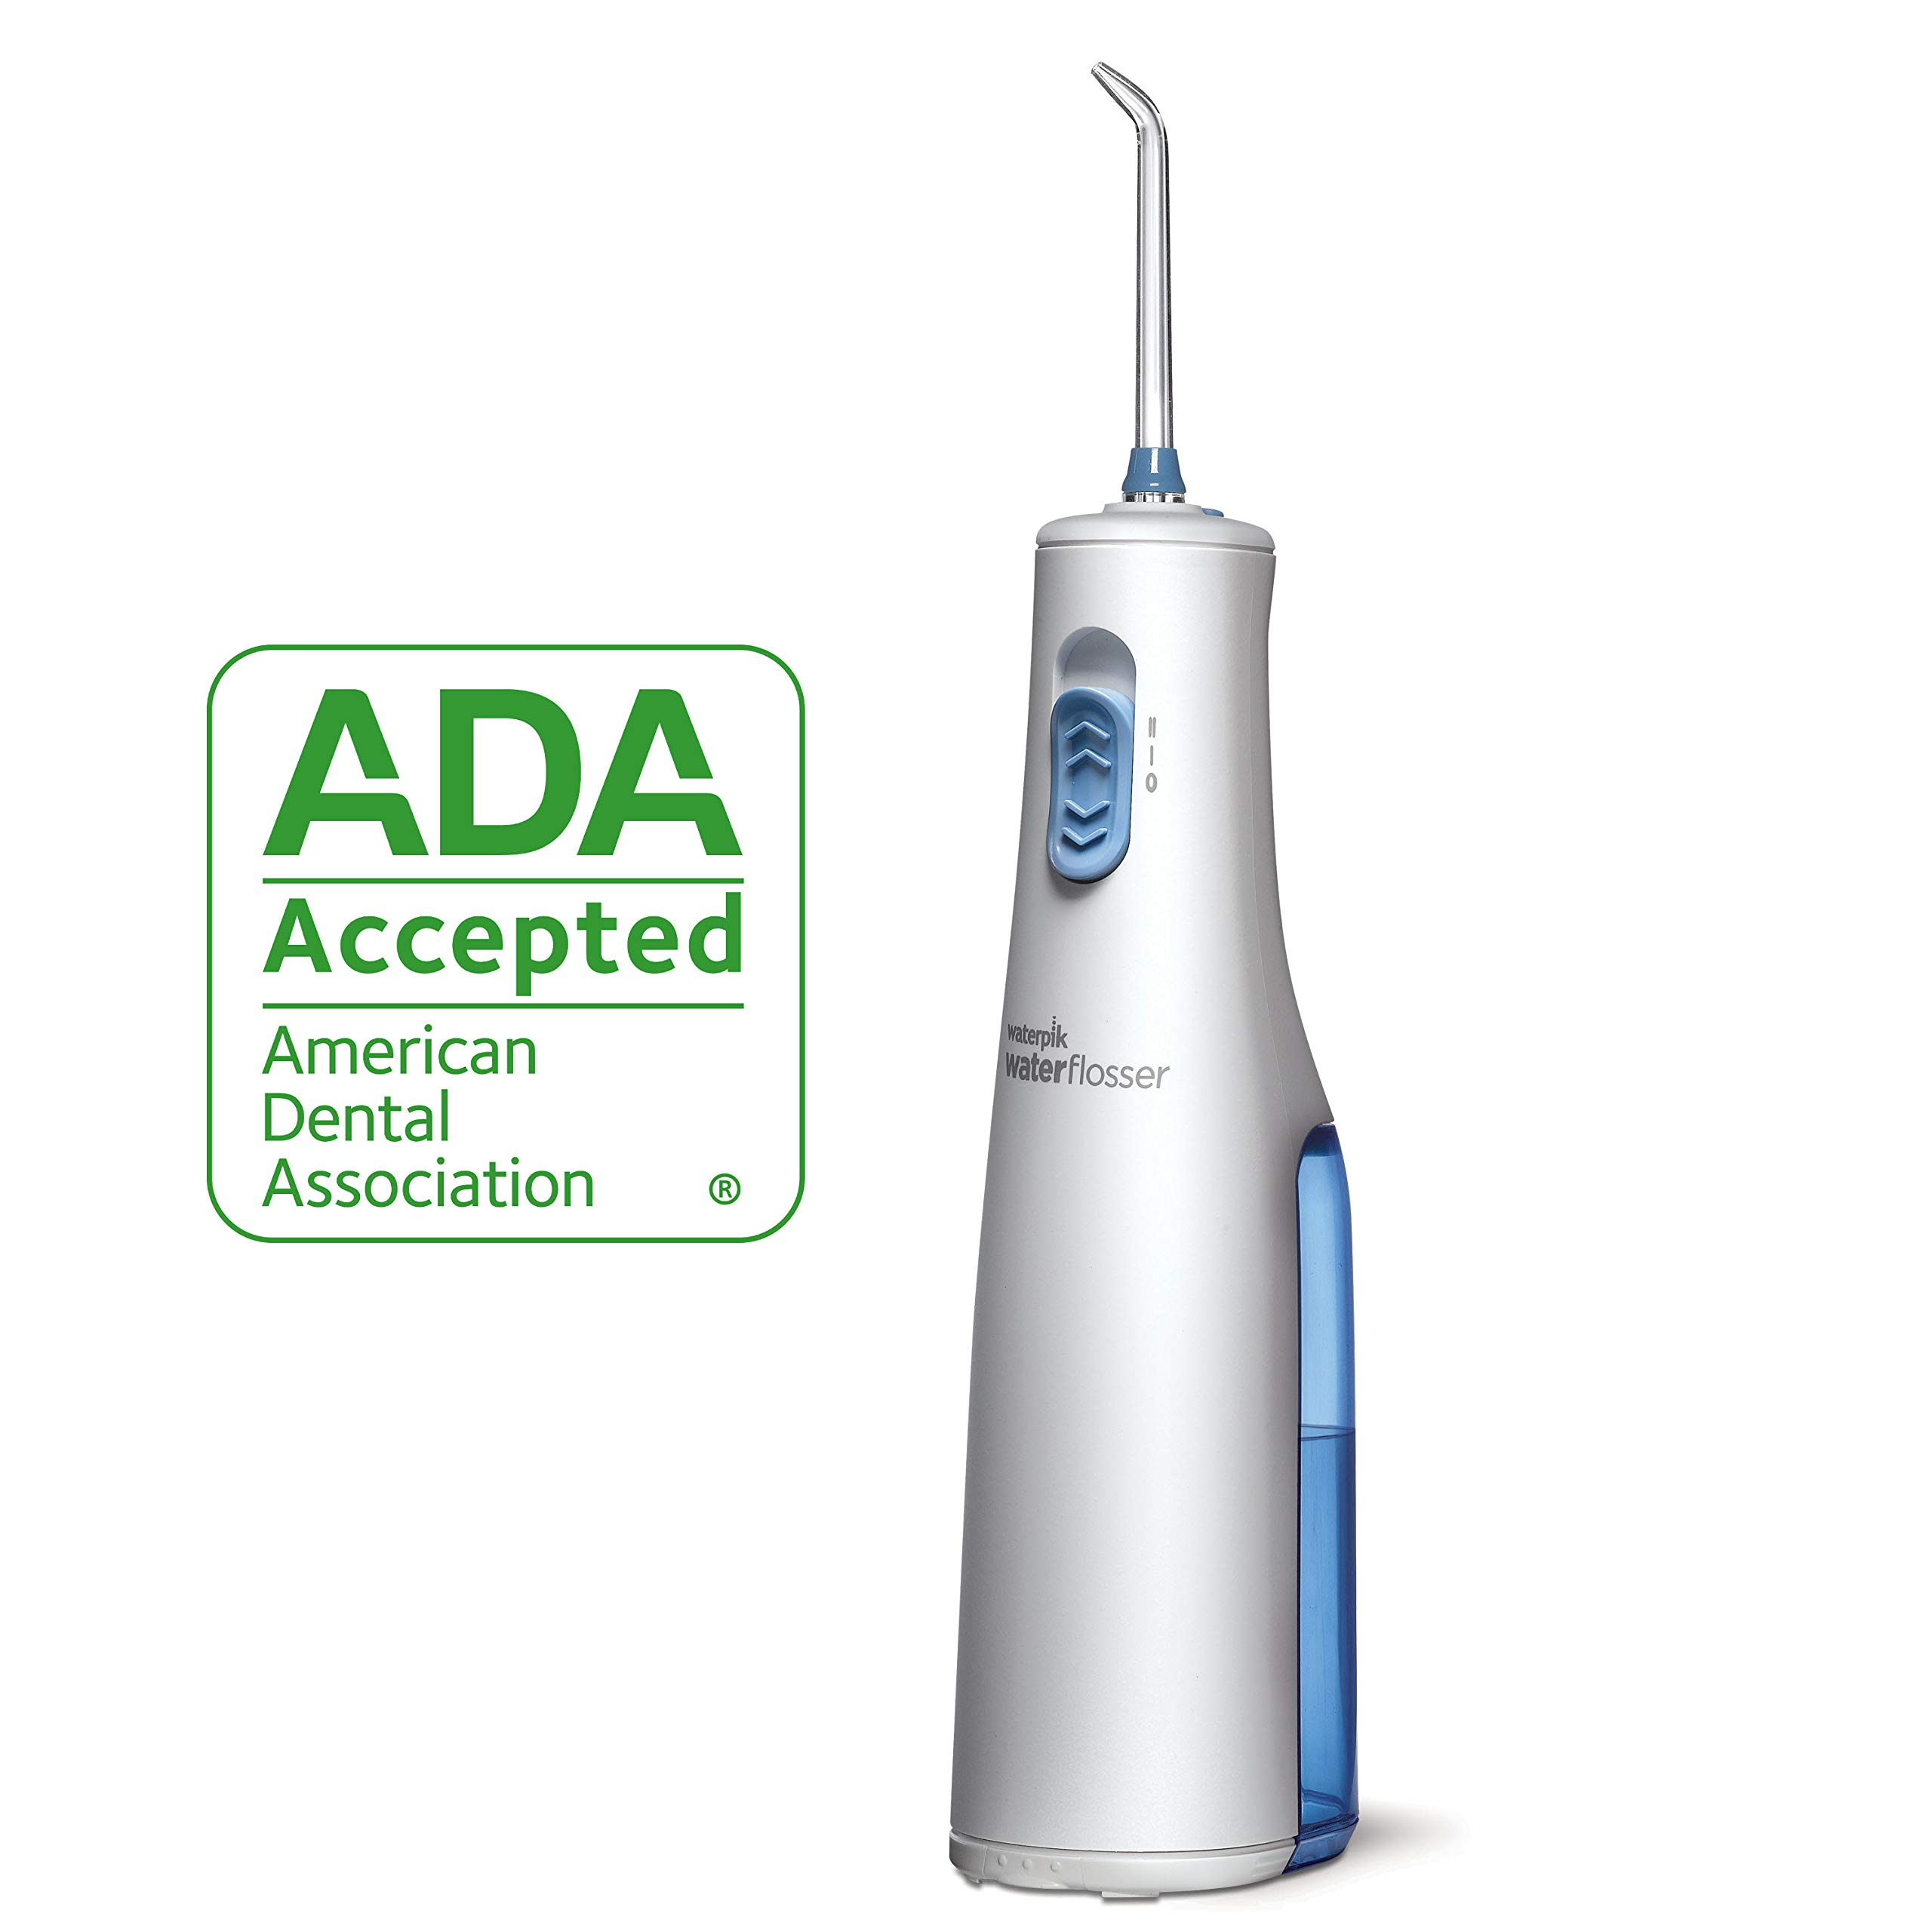 Waterpik Cordless Water Flosser, Battery Operated & Portable for Travel & Home, ADA Accepted Cordless Express, White WF-02 by Waterpik